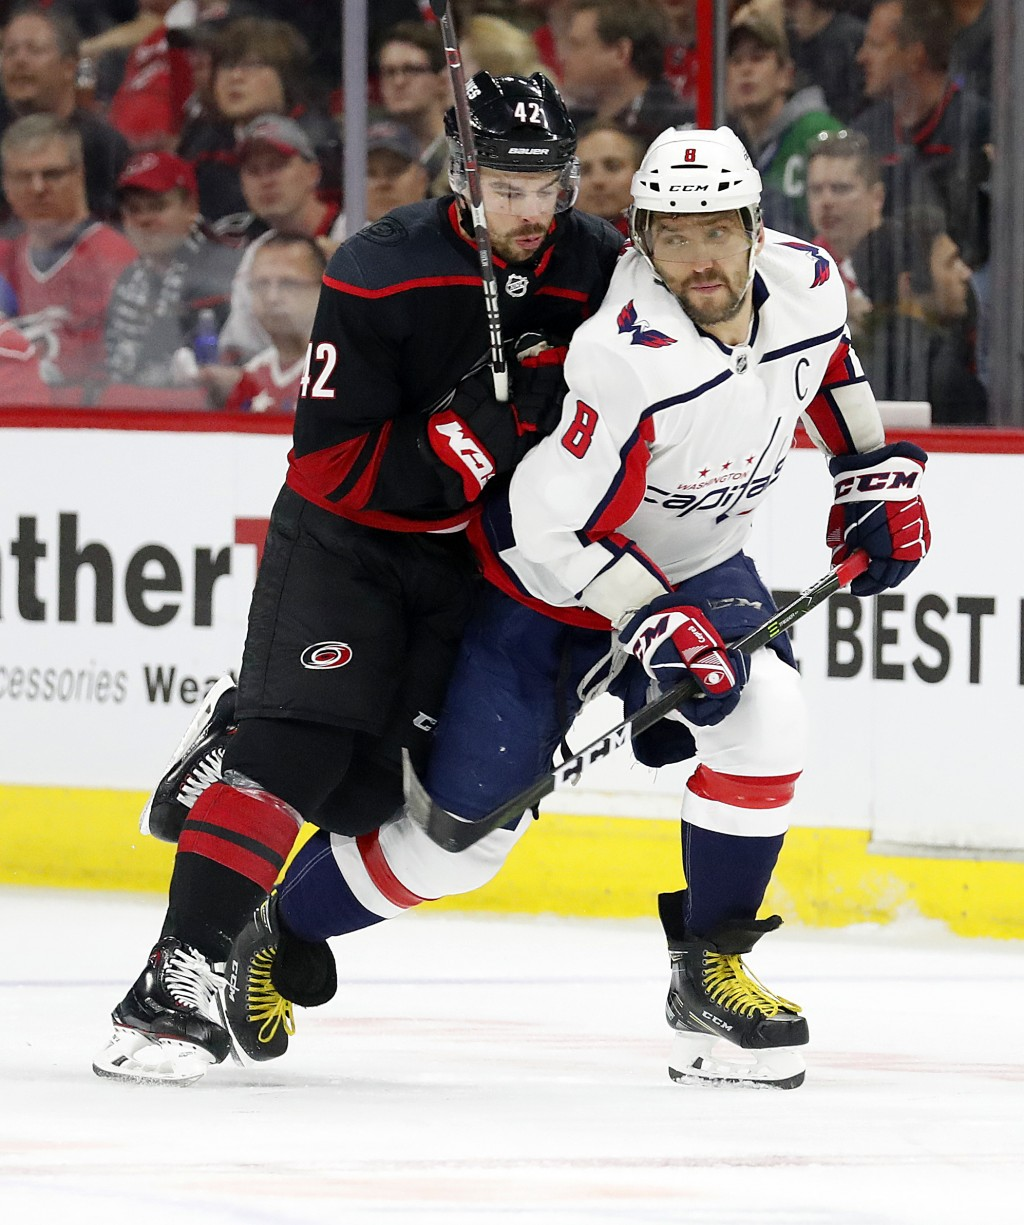 Washington Capitals' Alex Ovechkin (8), of Russia, tangles with Carolina Hurricanes' Greg McKegg (42) during the first period of Game 4 of an NHL hock...